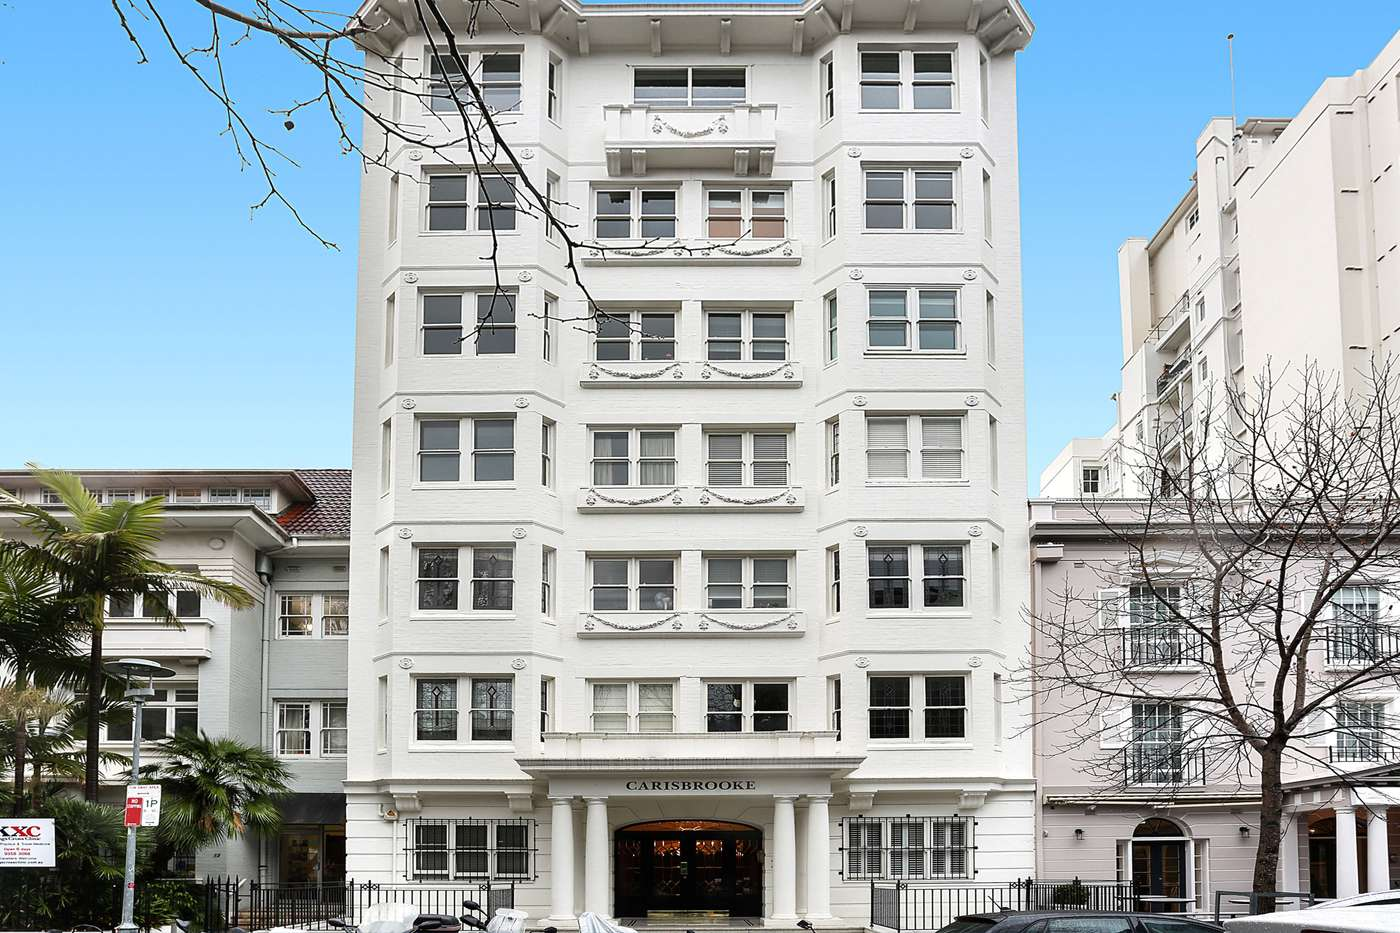 Main view of Homely apartment listing, 1/11 Springfield Avenue, Potts Point, NSW 2011